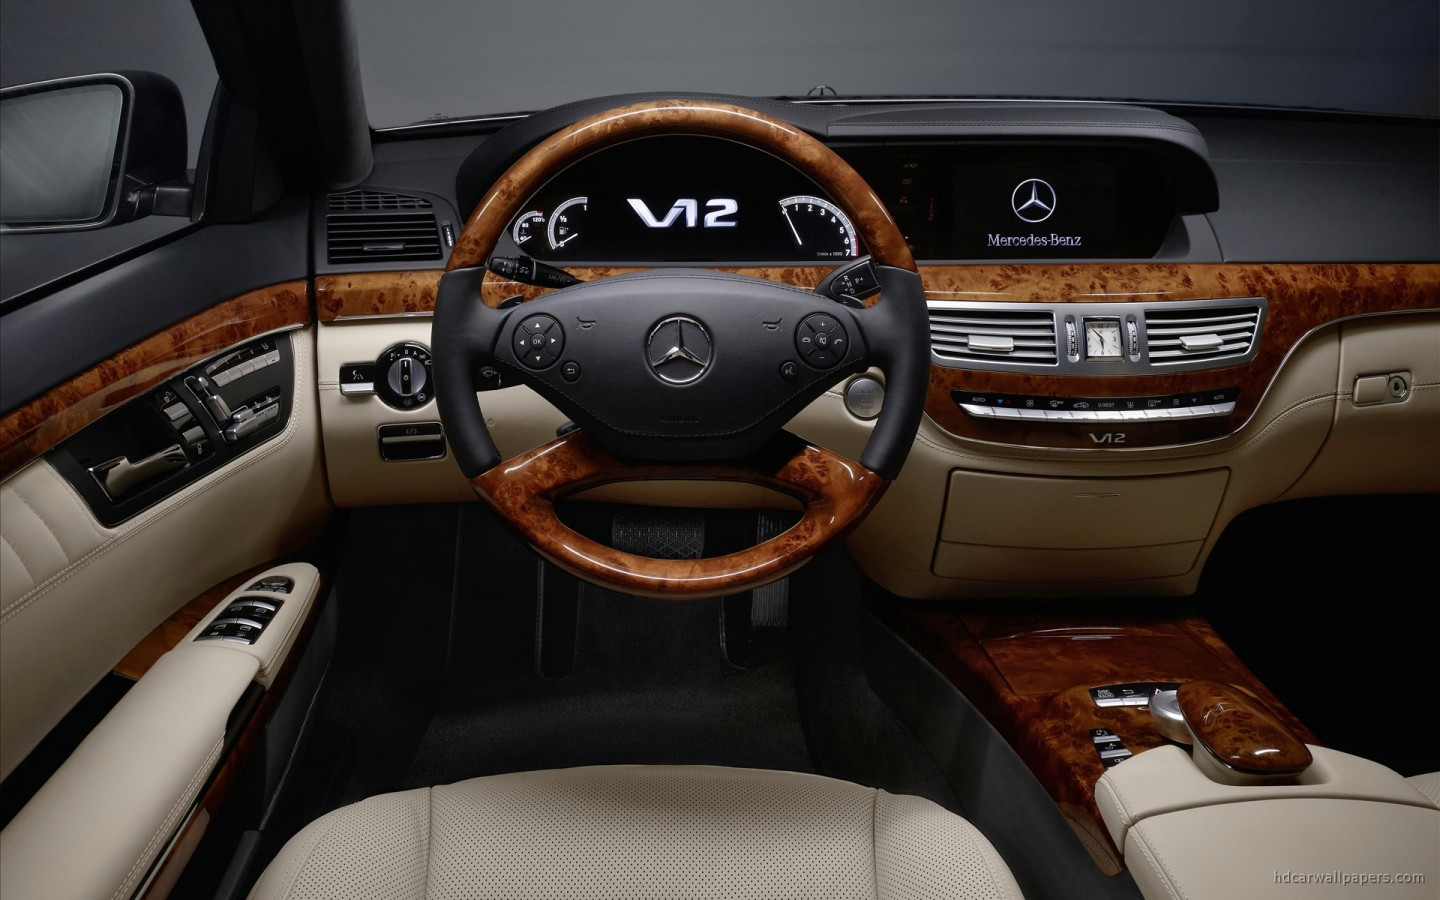 2010 Mercedes Benz S Class Interior Wallpaper Hd Car Wallpapers Id 1264